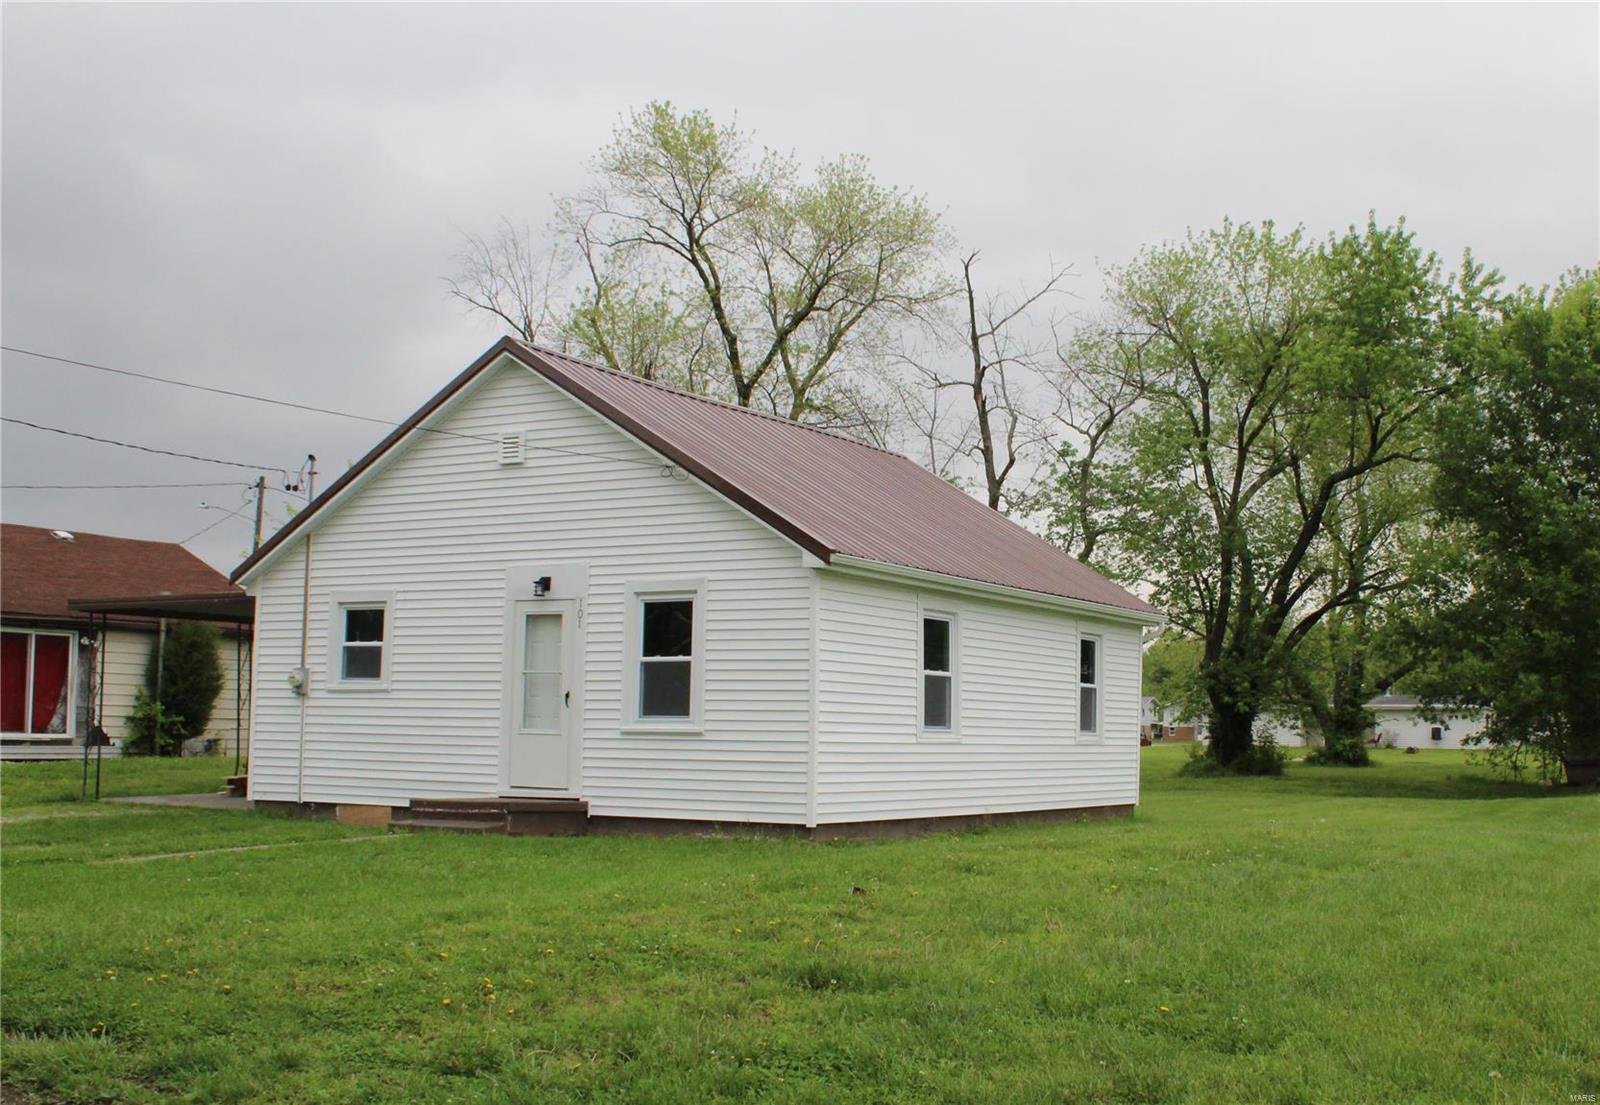 101 N Hasle Street Property Photo - Sparta, IL real estate listing